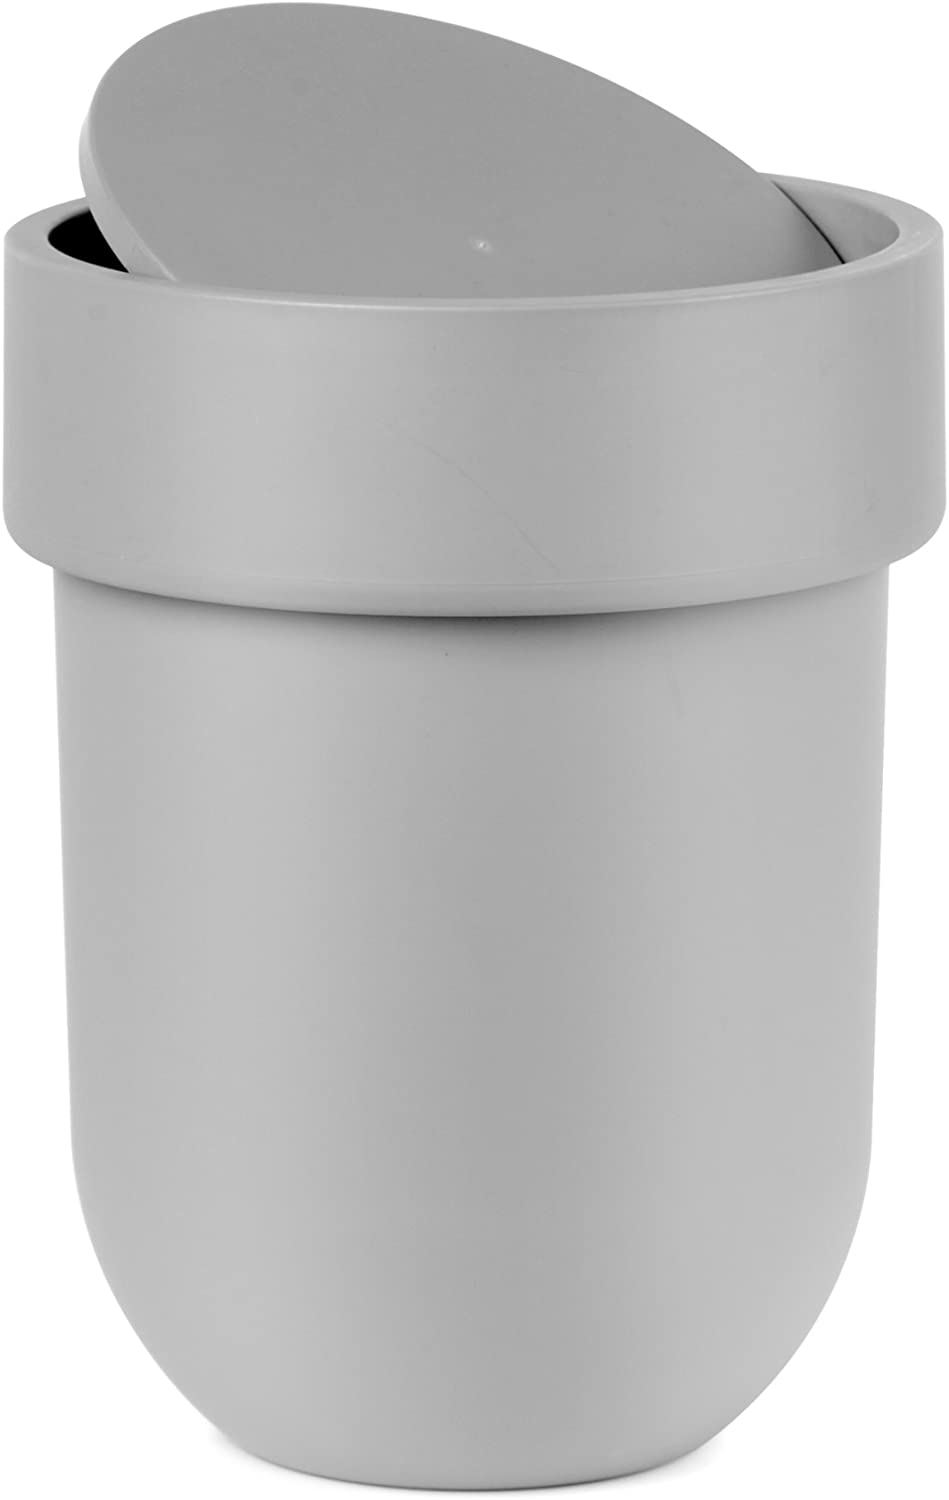 Umbra Touch Waste Can, Small Trash Can with Lid, Swing Lid Waste Basket, Garbage Can with Lid for Washroom/Bathroom, Soft Touch, Matte Gray Finish